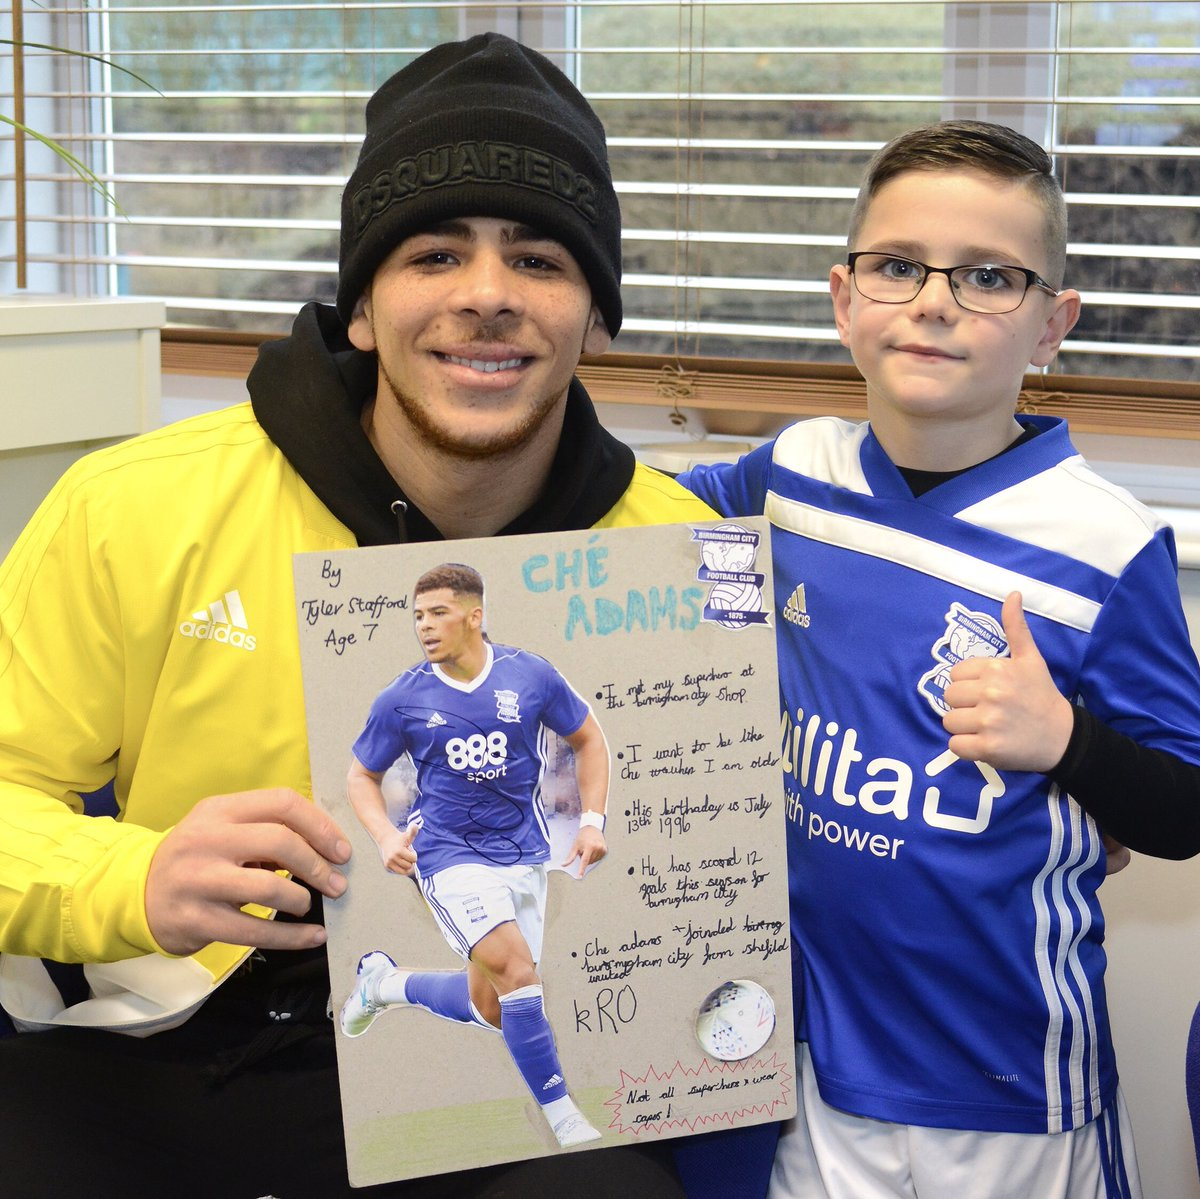 💙 Blues-mad Tyler Stafford was asked to do a piece of homework about superheroes.  The subject he chose? @CheAdams9.  When Che found out about it, he asked to meet Tyler so that he could see his work for himself and sign it. 👌  #BCFC